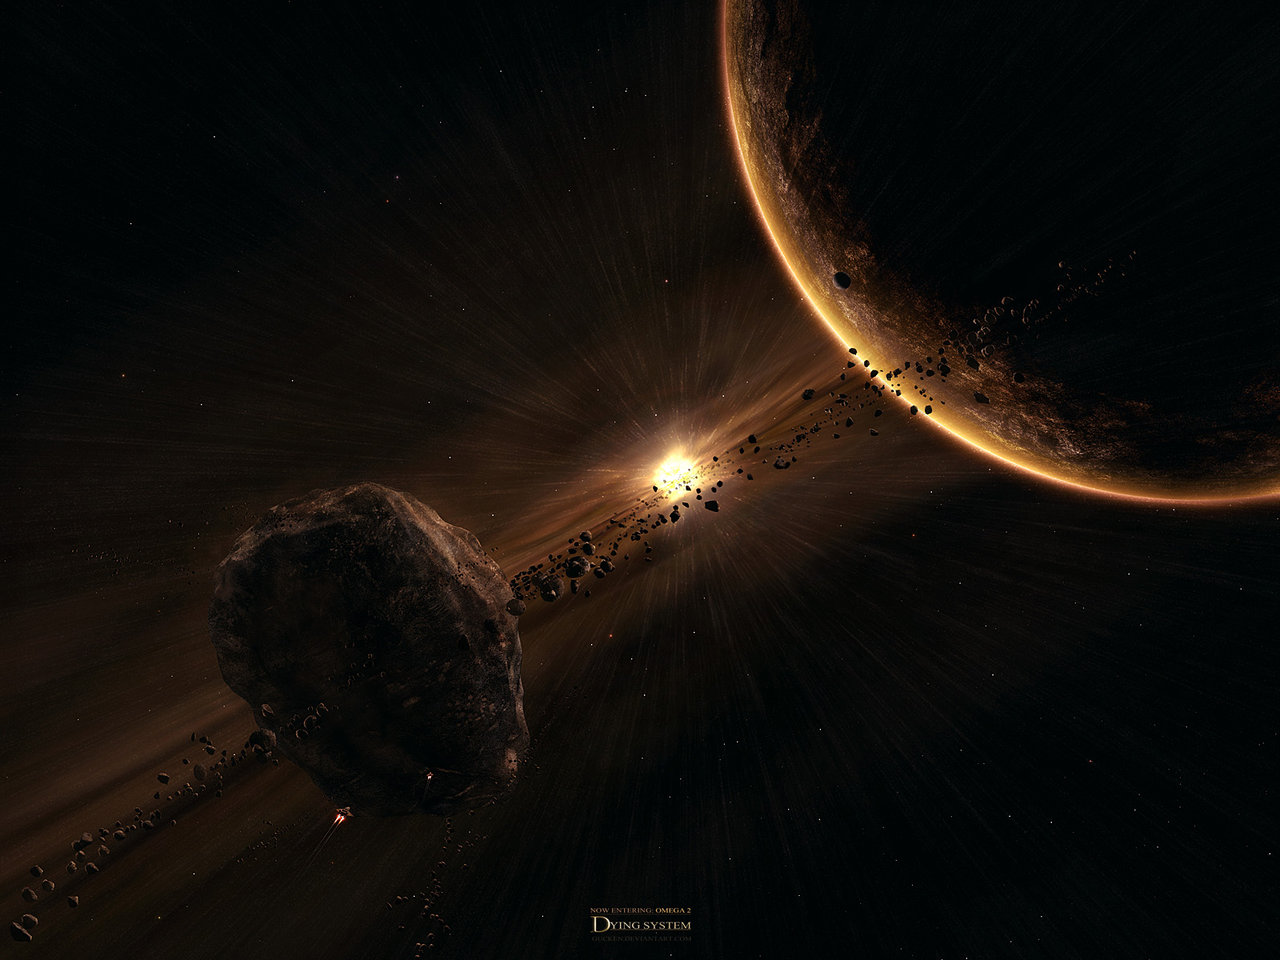 Asteroids 3d Live Wallpaper For Pc Science Fiction In The Universe By Jeff Michelmann Magic